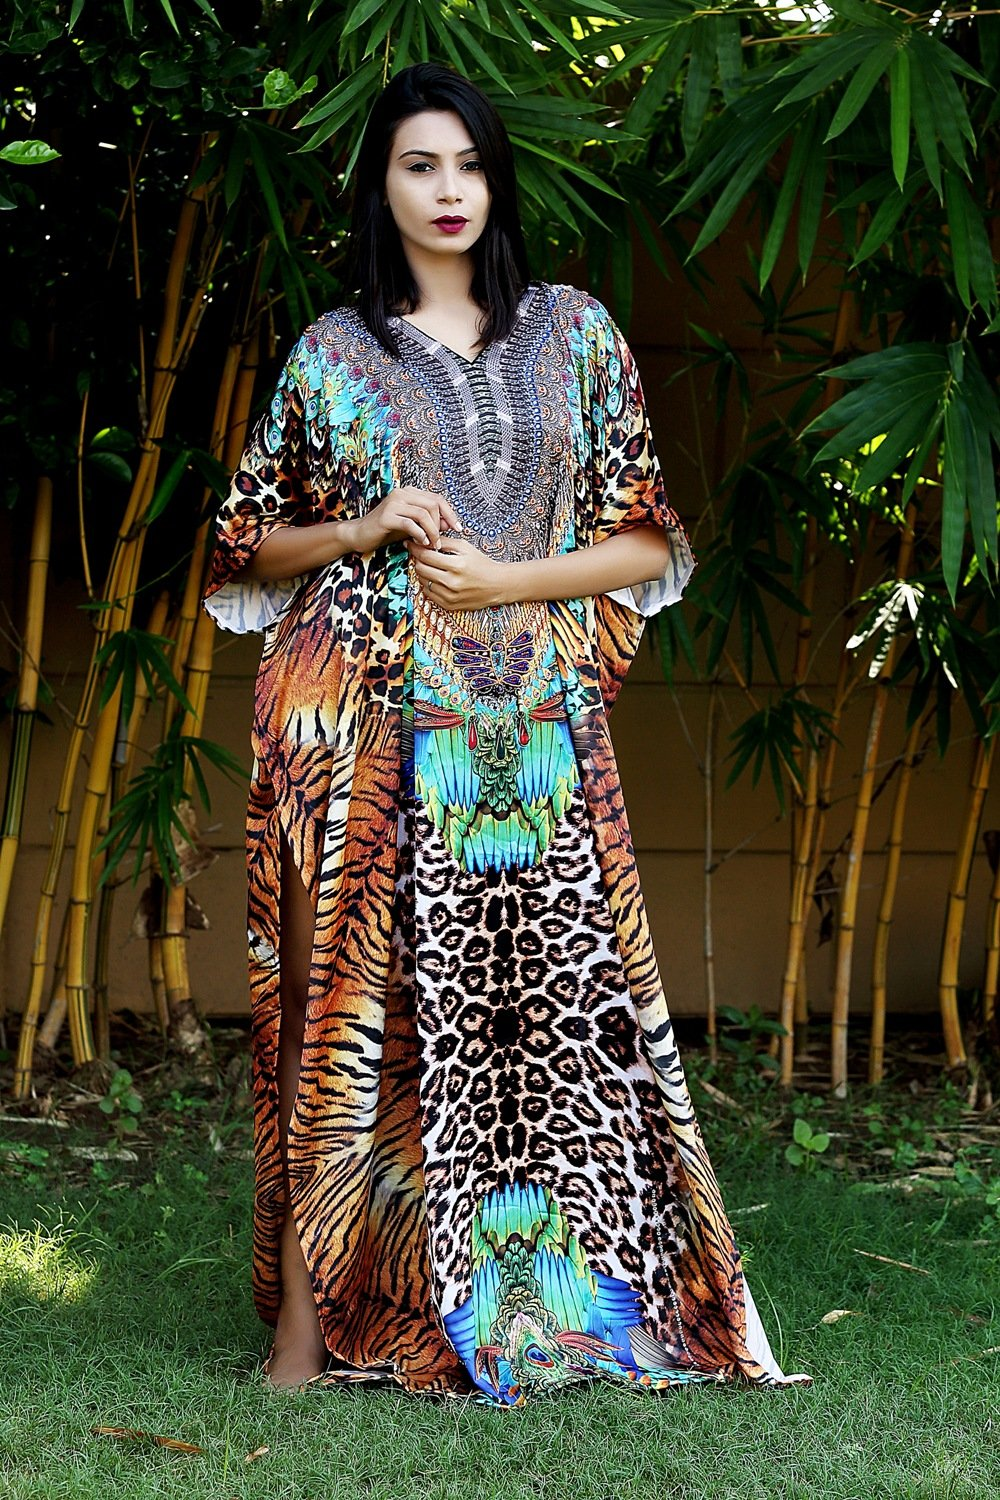 Silk kaftan one piece dress on sale/jeweled/handmade/caftan beach cover up hot look luxuries Resort party kaftan 40 - Silk kaftan